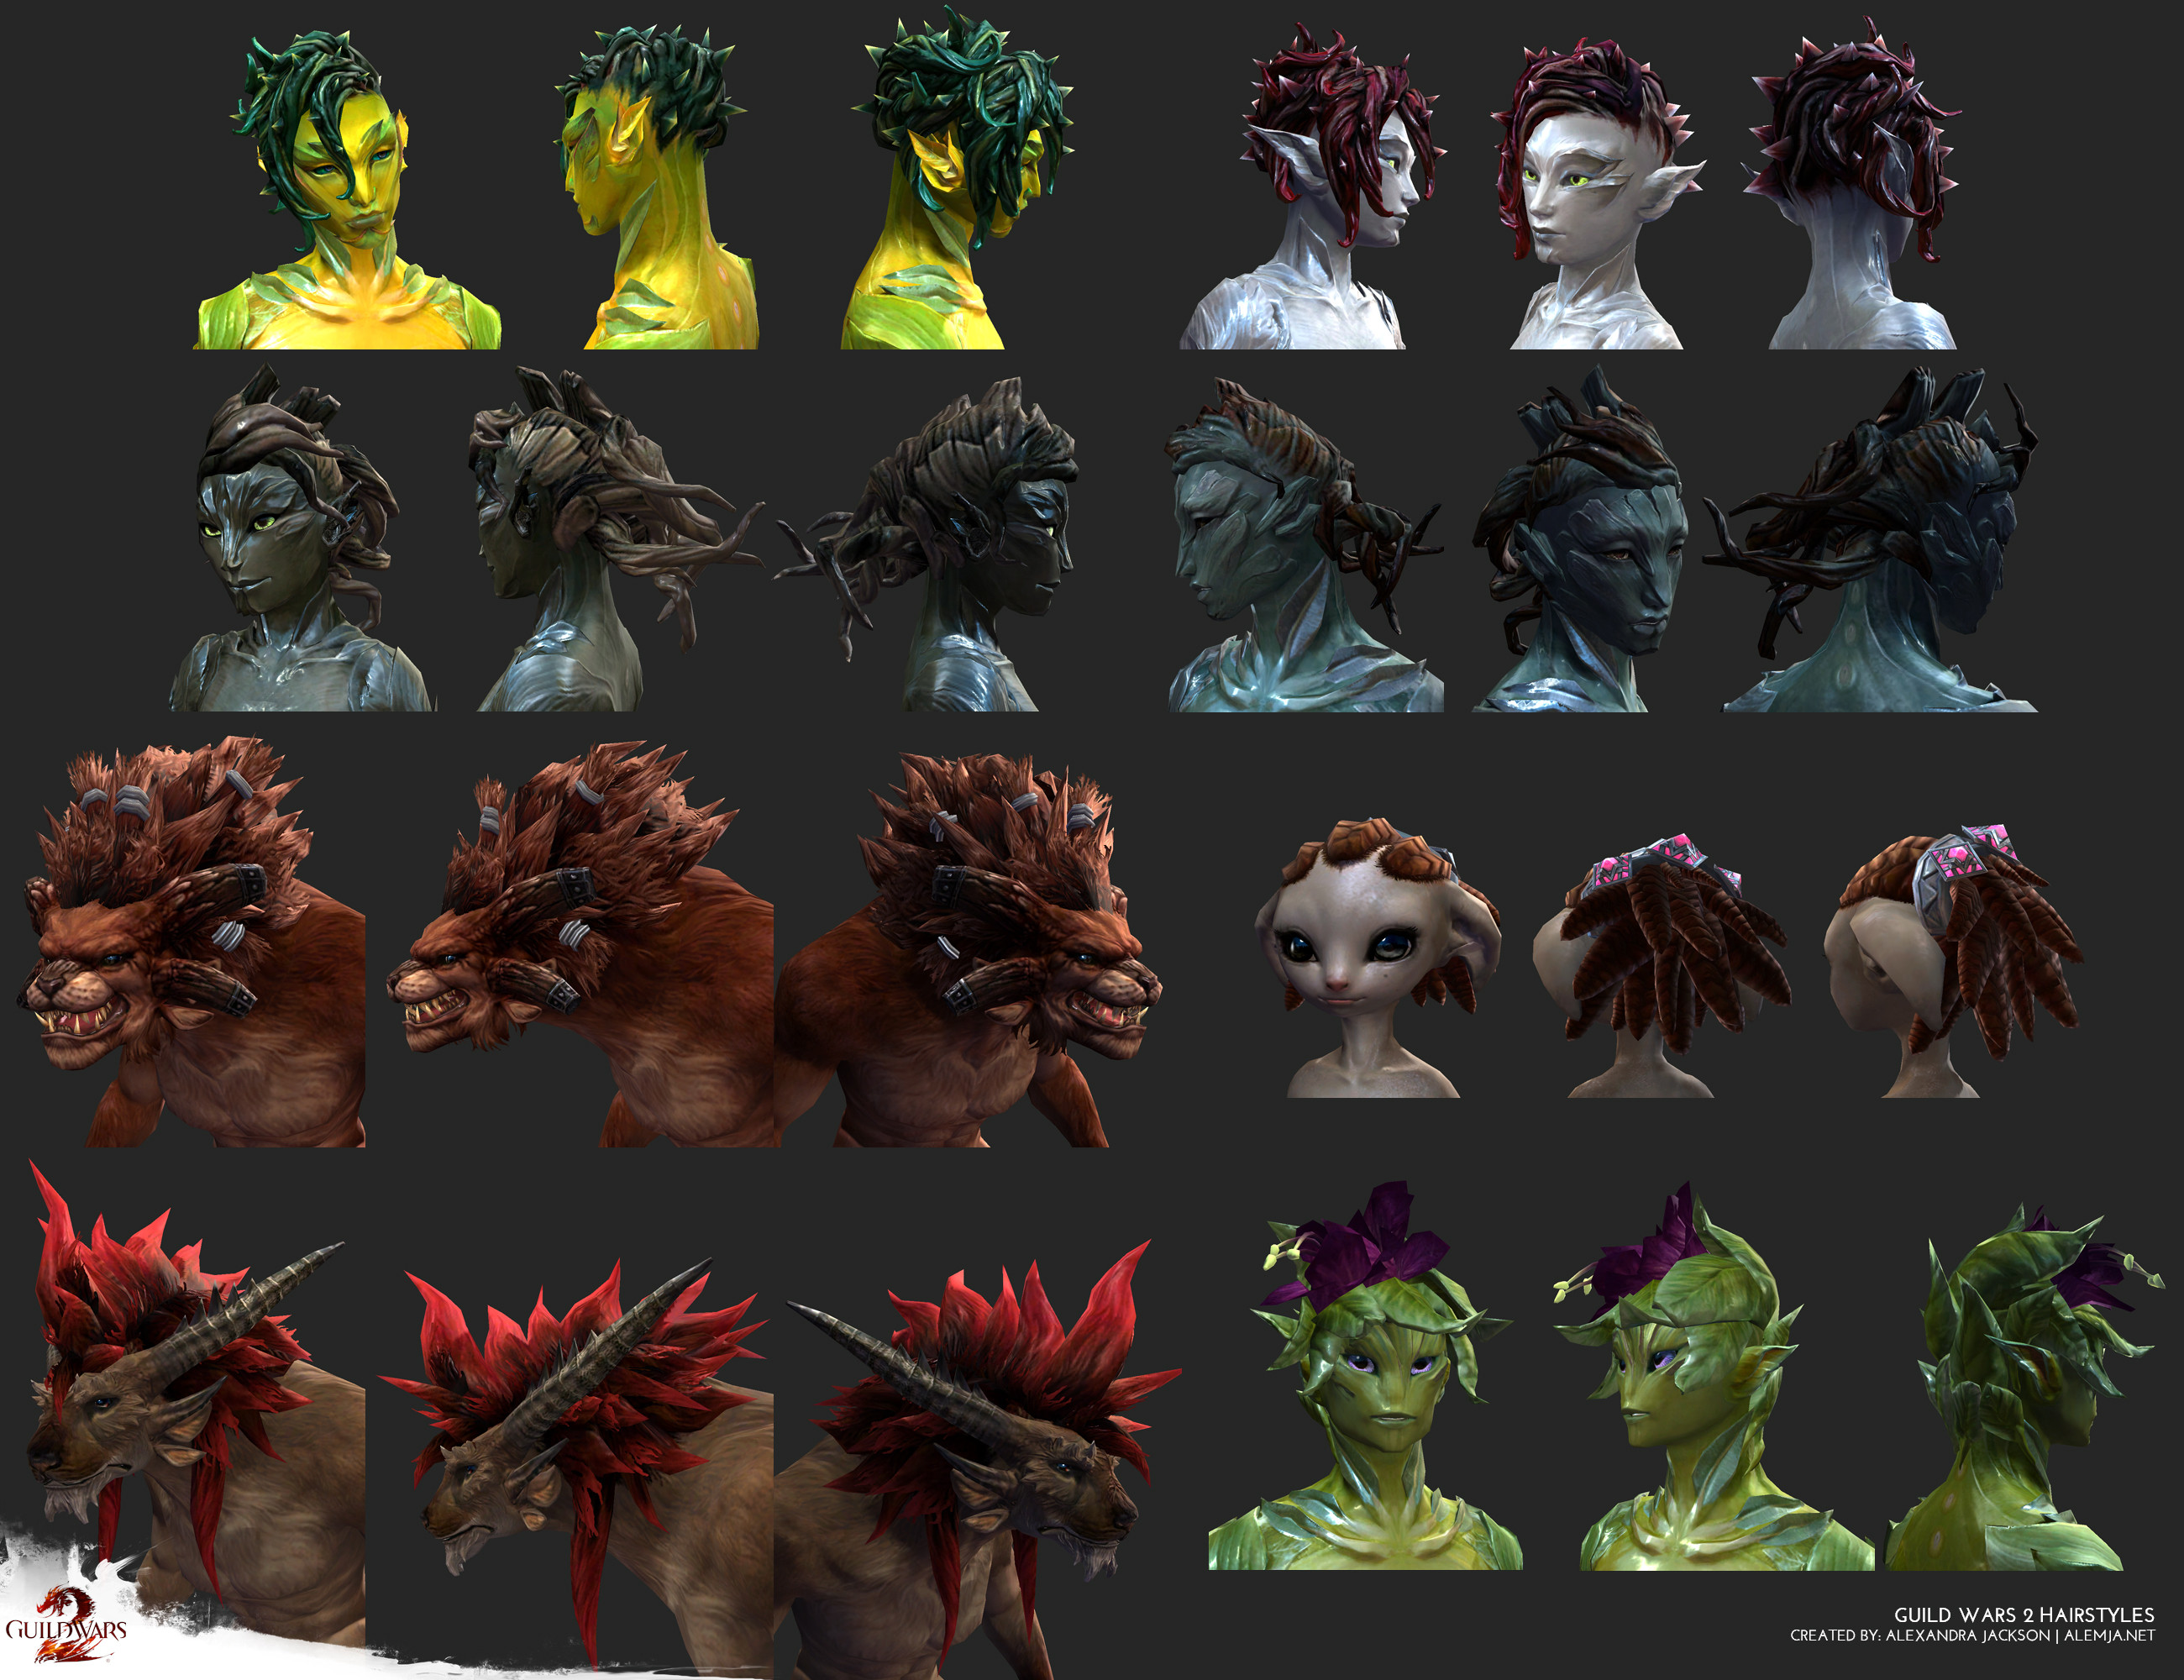 Hairstyles I created for various races that where released for Guild Wars 2. I concepted, sculpted modeled and textured each of them